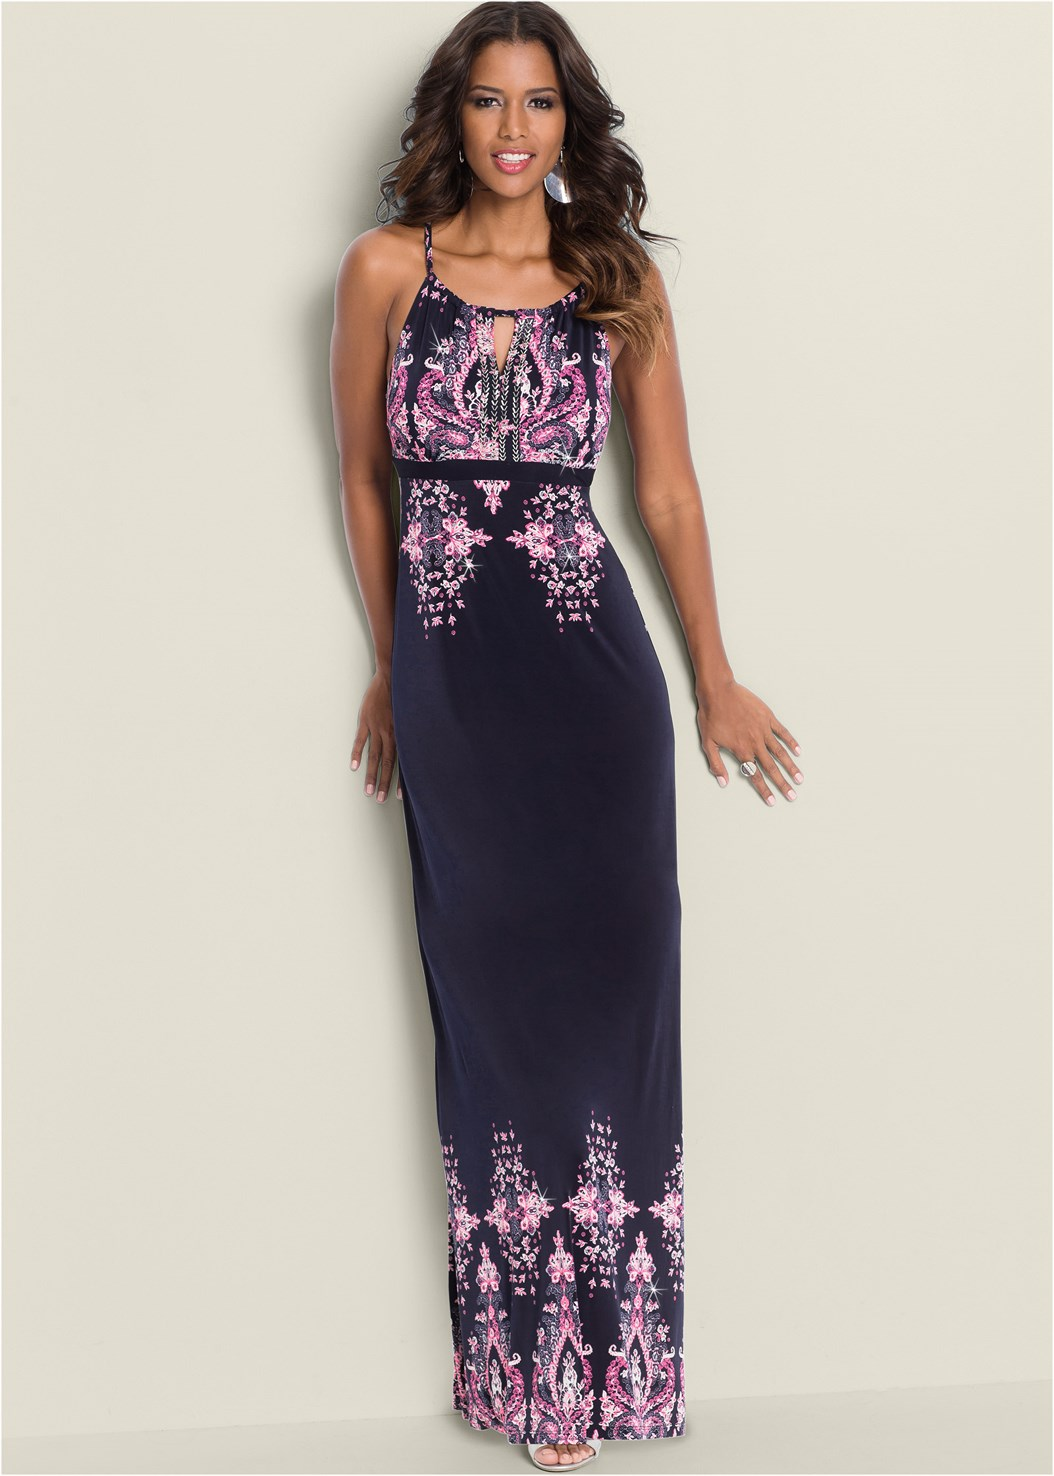 Paisley Print Maxi Dress,Beaded Hoop Earrings